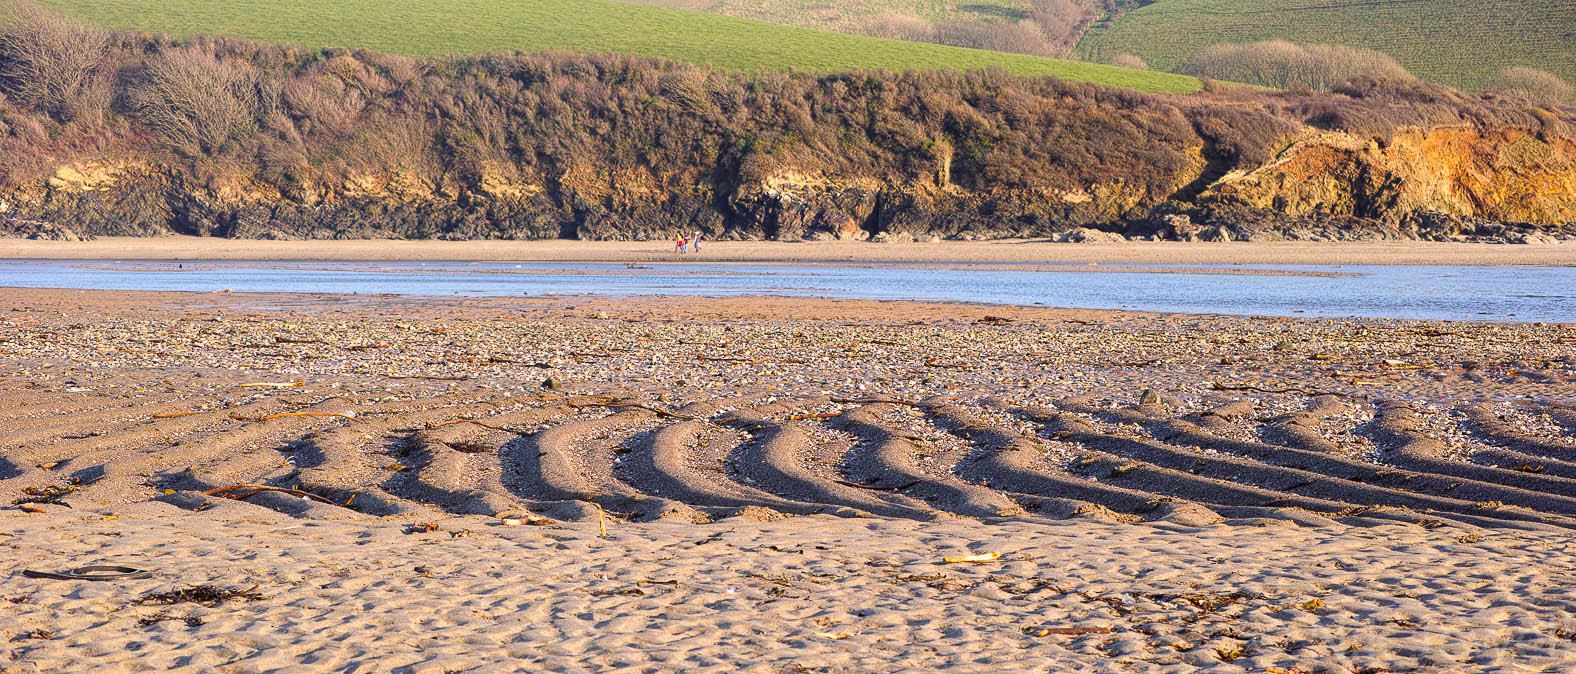 Ripples in the sand of the Erme Estuary in the South Hams of Devon